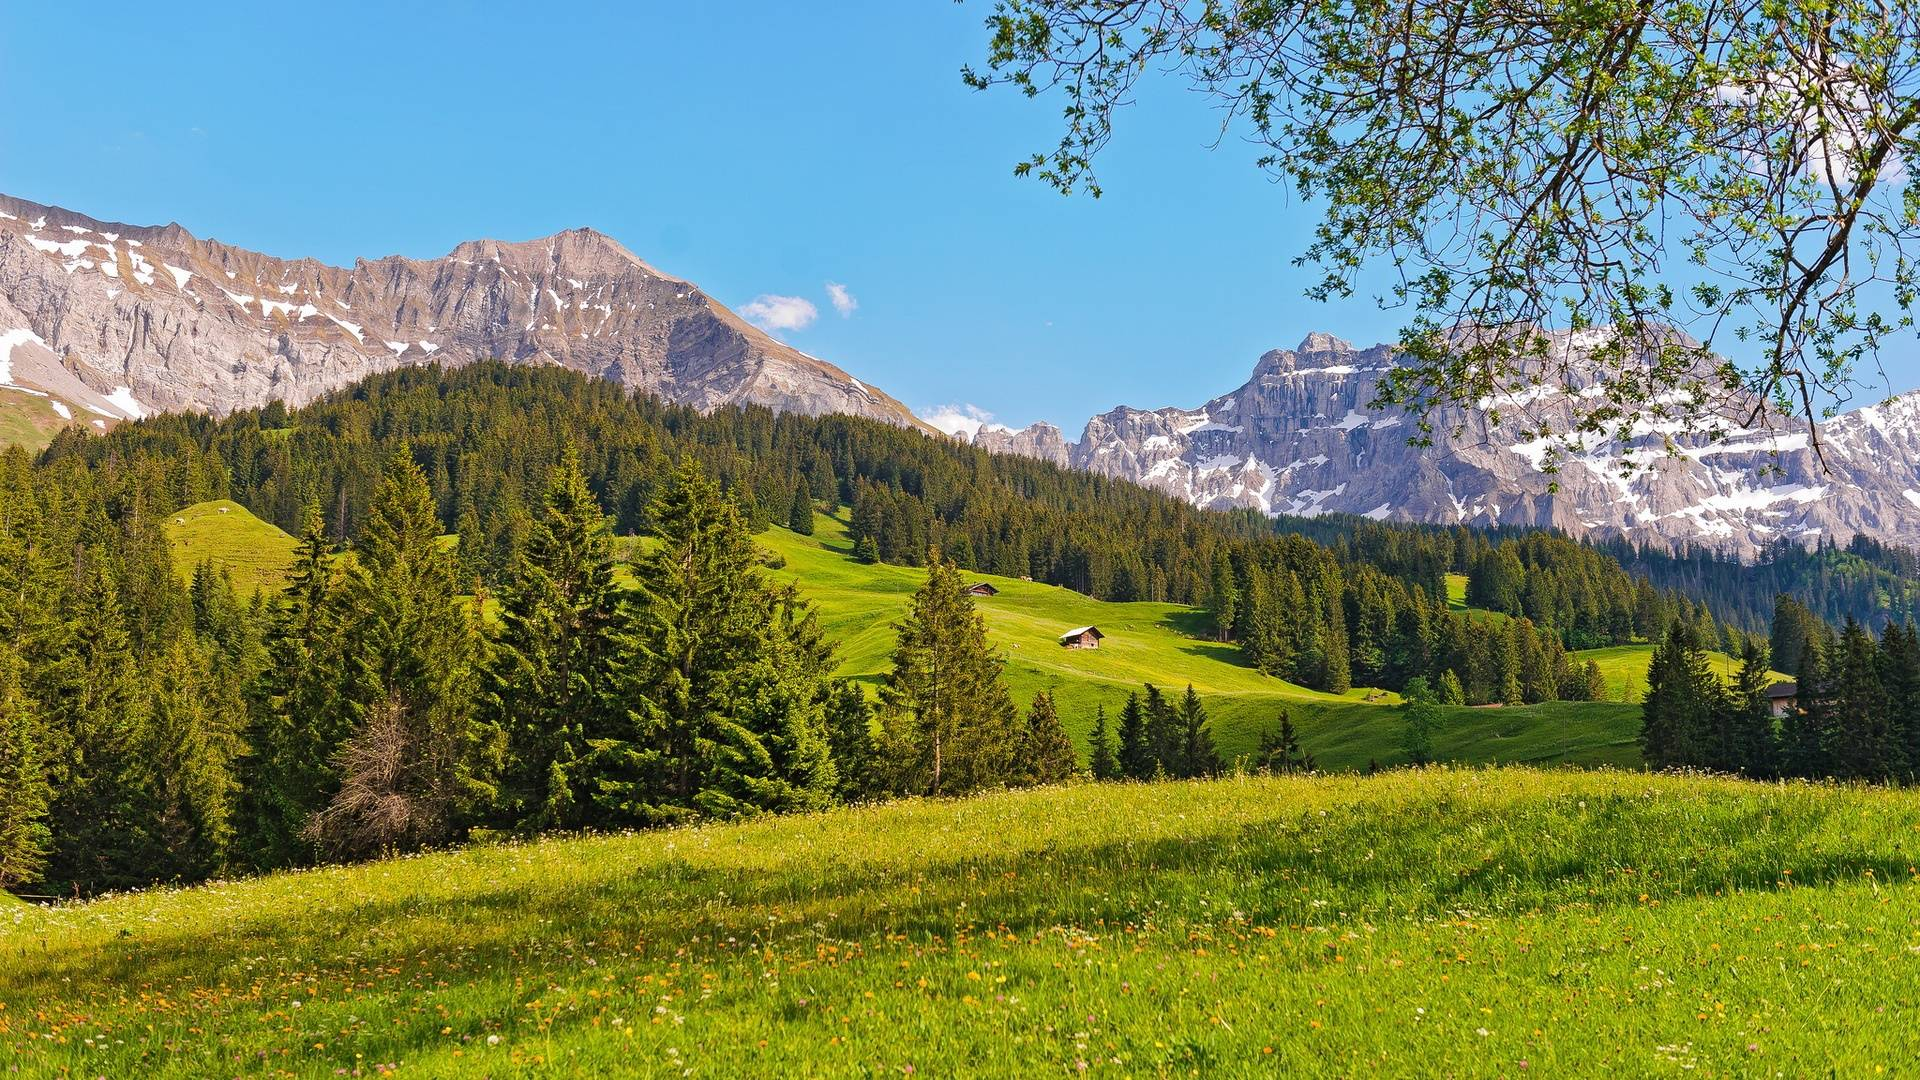 Summer Meadow Swiss Alps Wallpaper, iPhone Wallpaper, Facebook ...